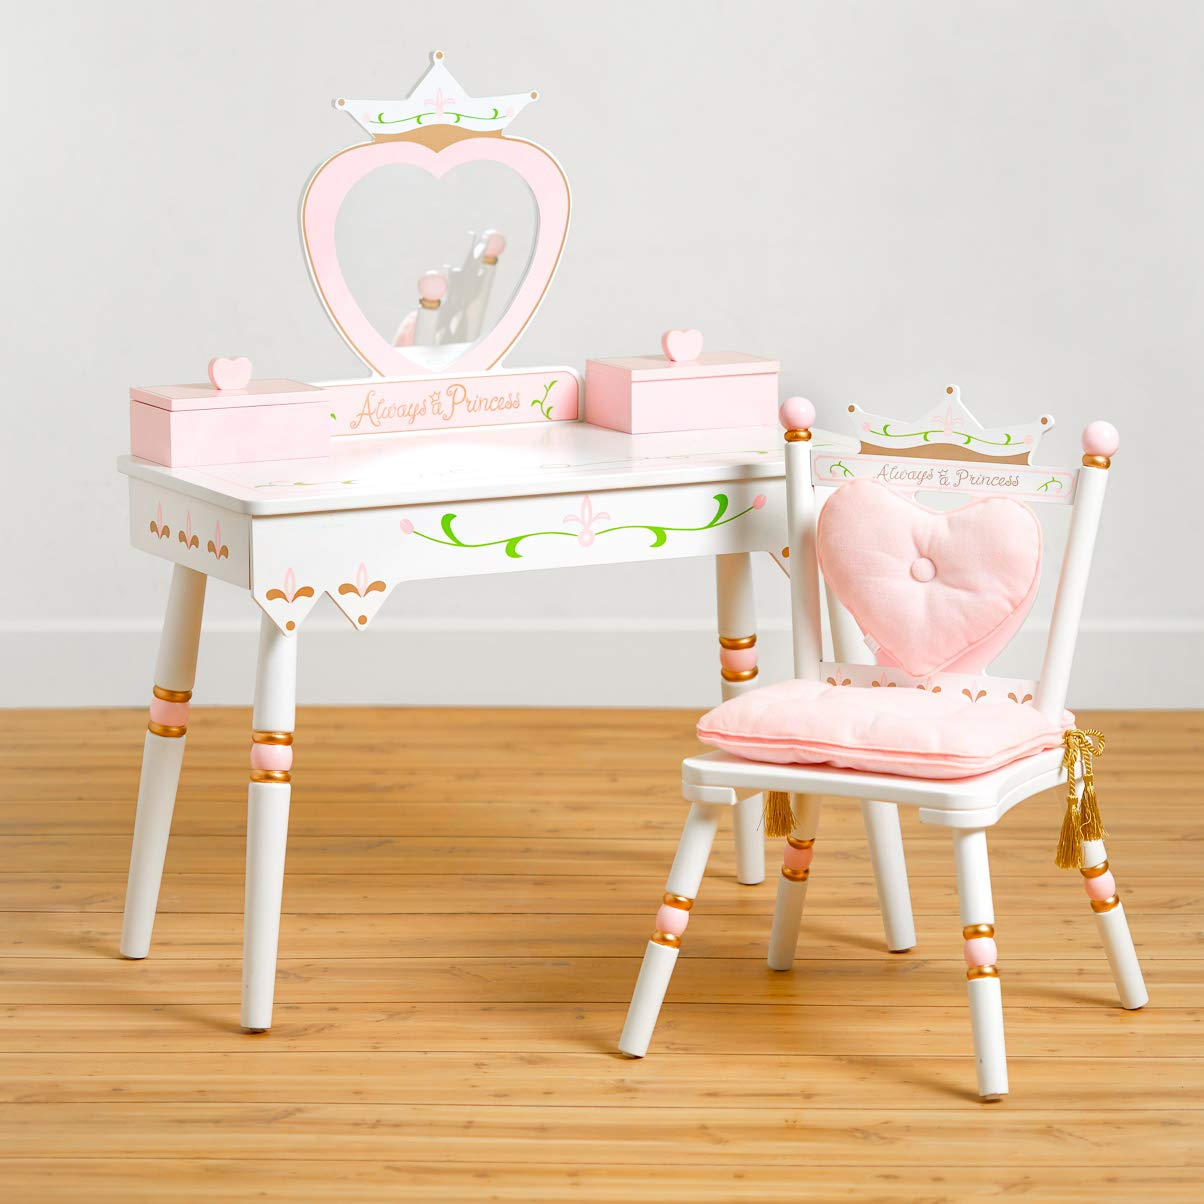 Wildkin Princess Vanity Table & Chair Set, Features Heart-Shaped Mirror, Two Jewelry Boxes, and Removable Plush Seat Cushions, Perfect for the Little Princess in Your Life - White by Wildkin